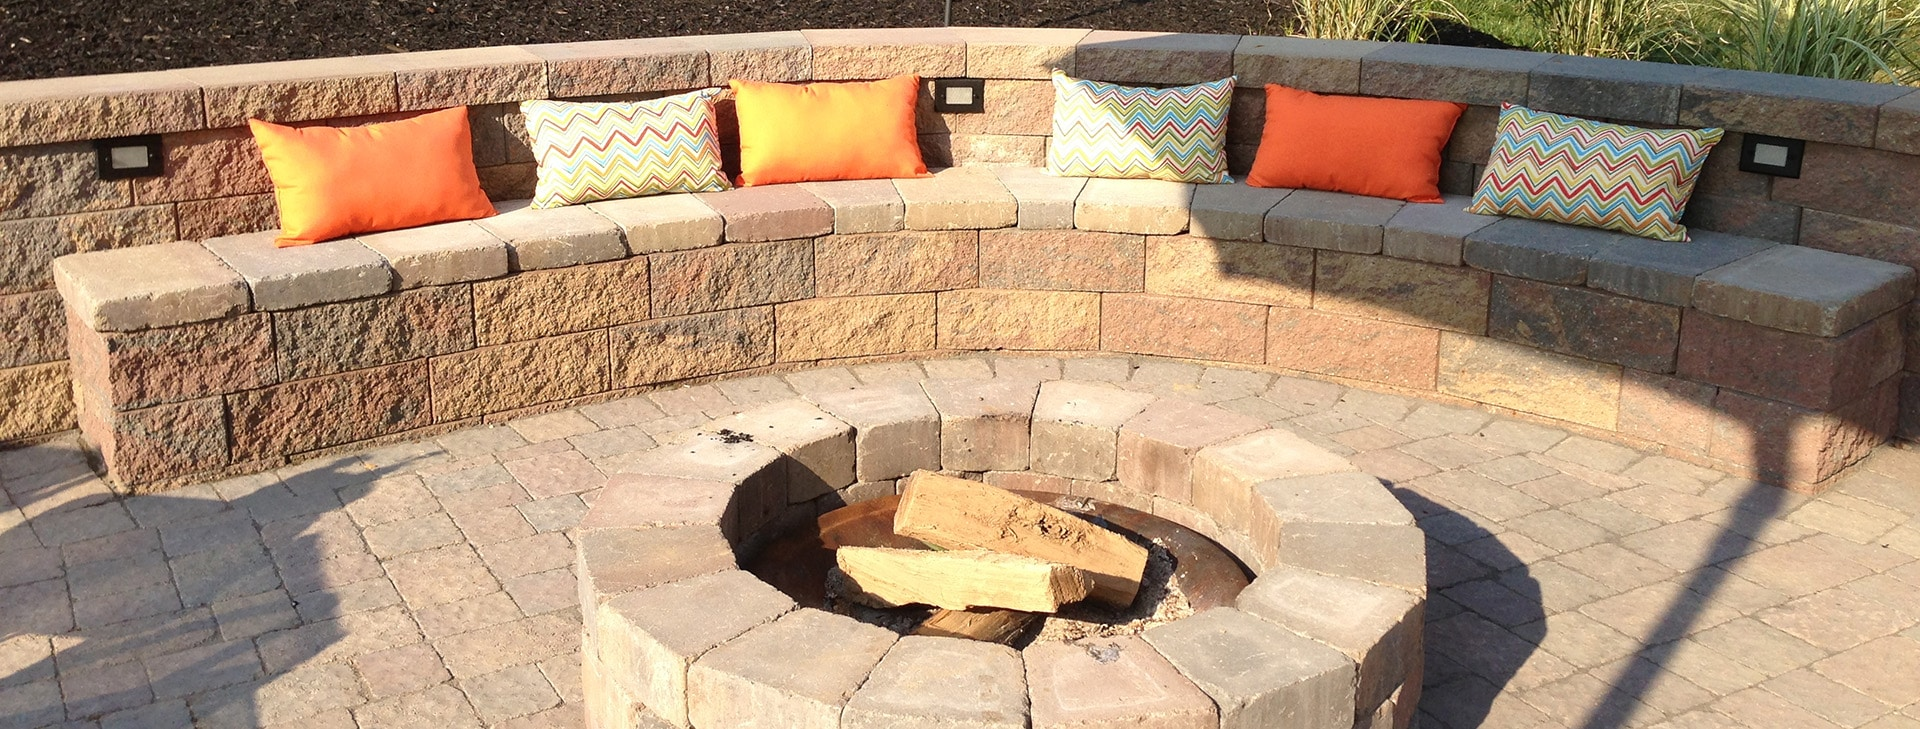 paved-patio-fireplace